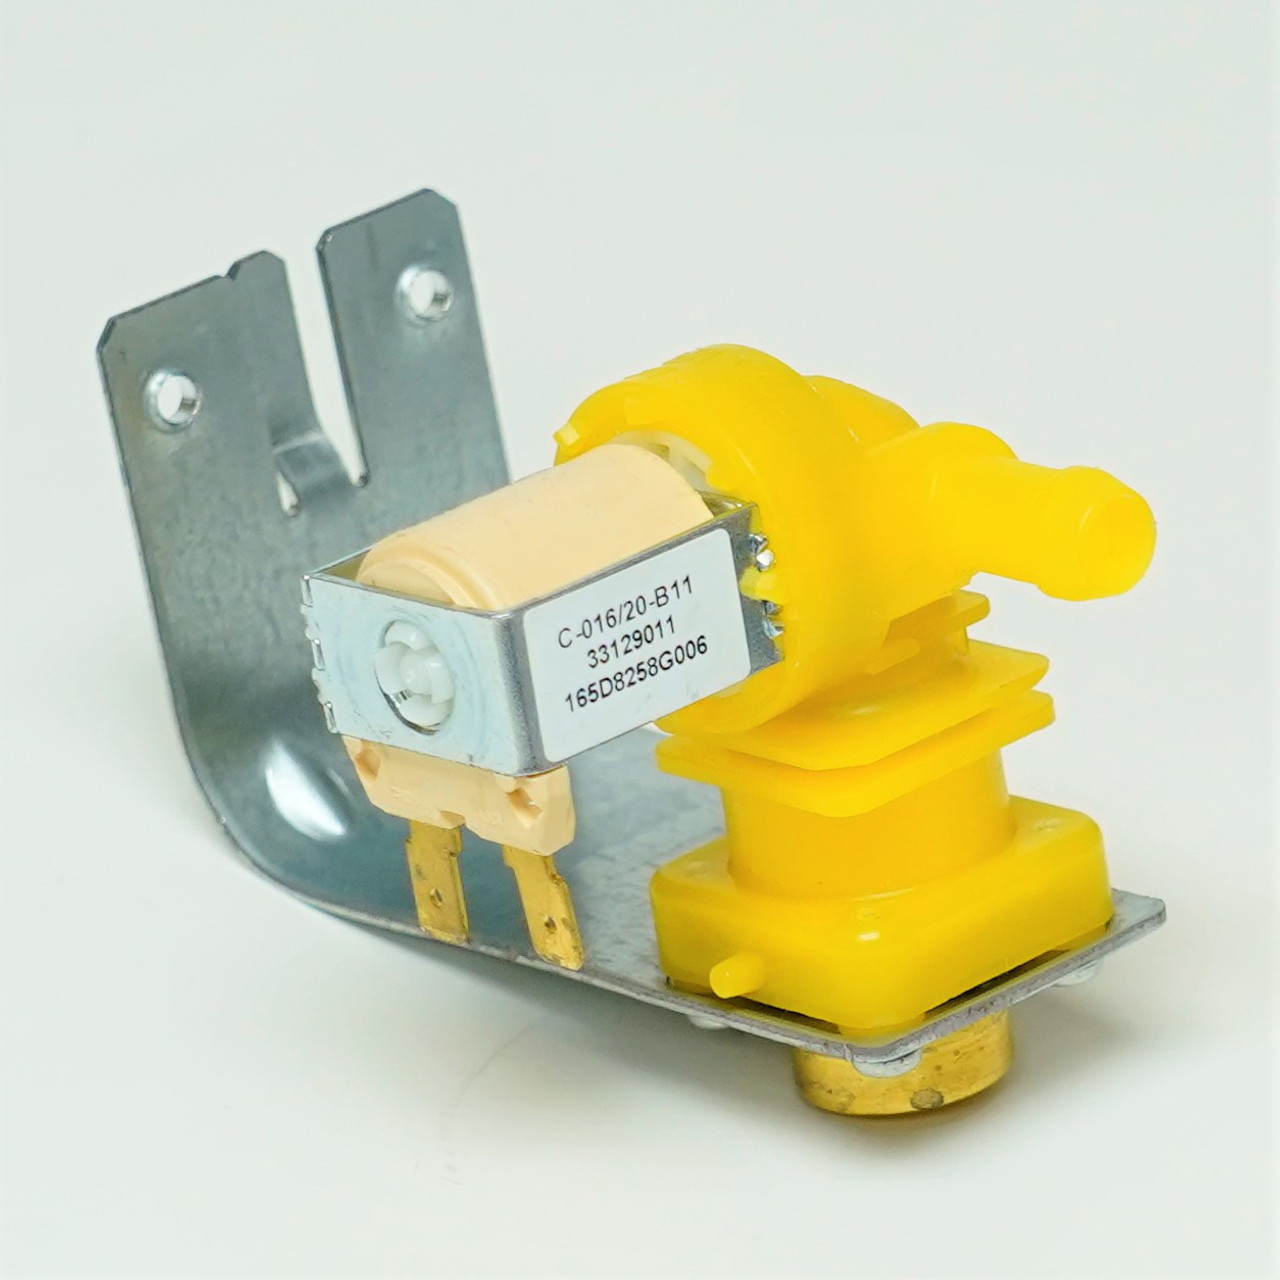 WD15X10014 Dishwasher Water Valve for General Electric